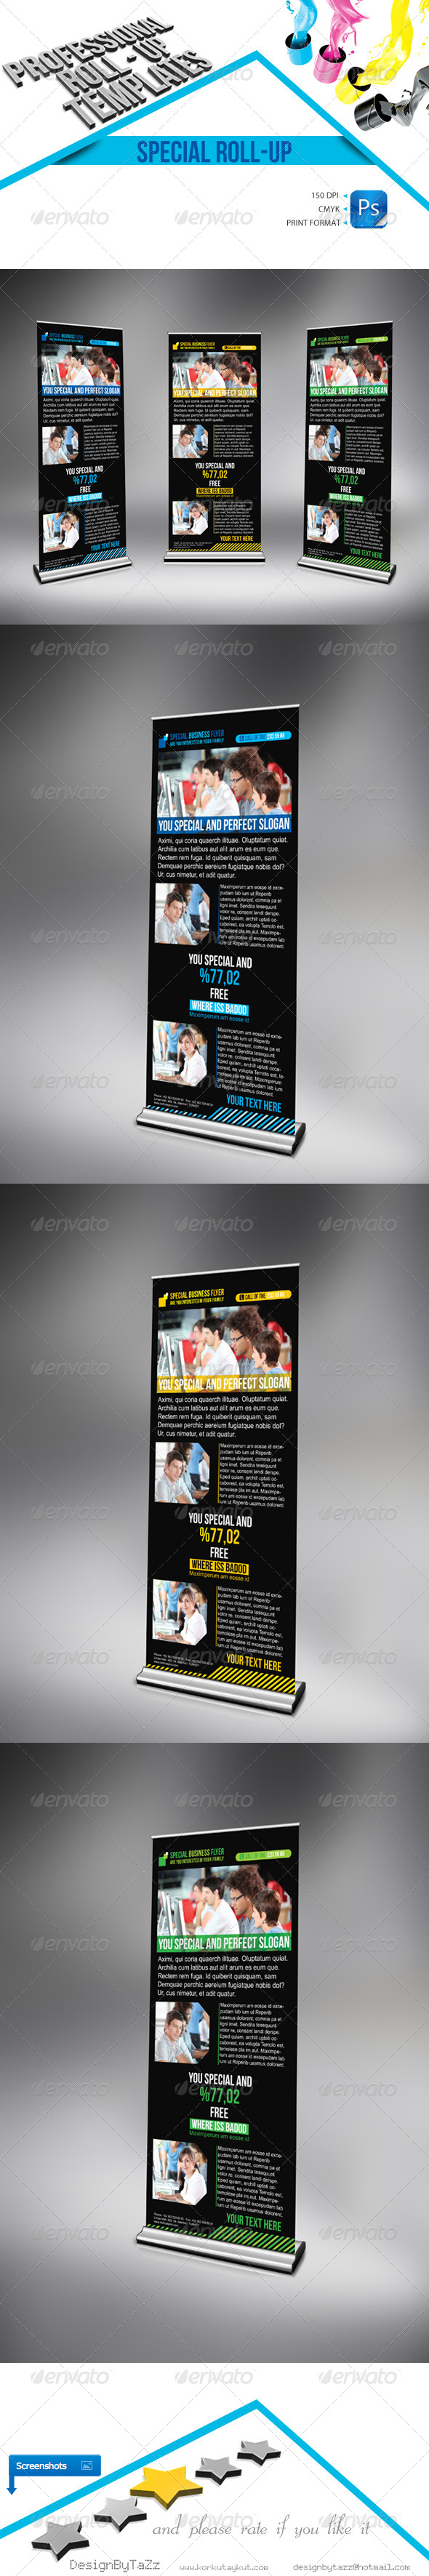 Special business roll up template graphicriver for Encore cs6 menu templates free